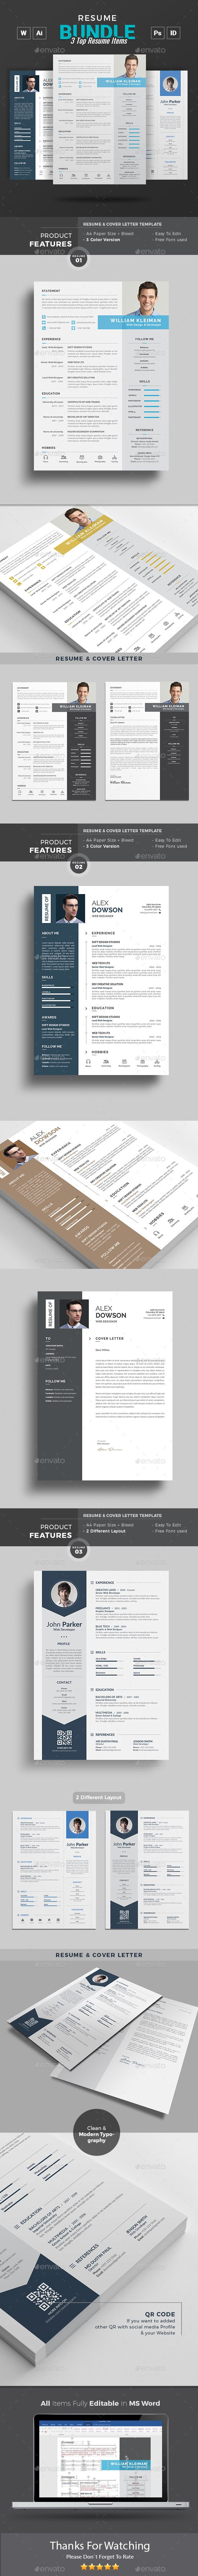 Resume Bundle #creative #resume clean  • Download here → https://graphicriver.net/item/resume-bundle/20659759?ref=pxcr